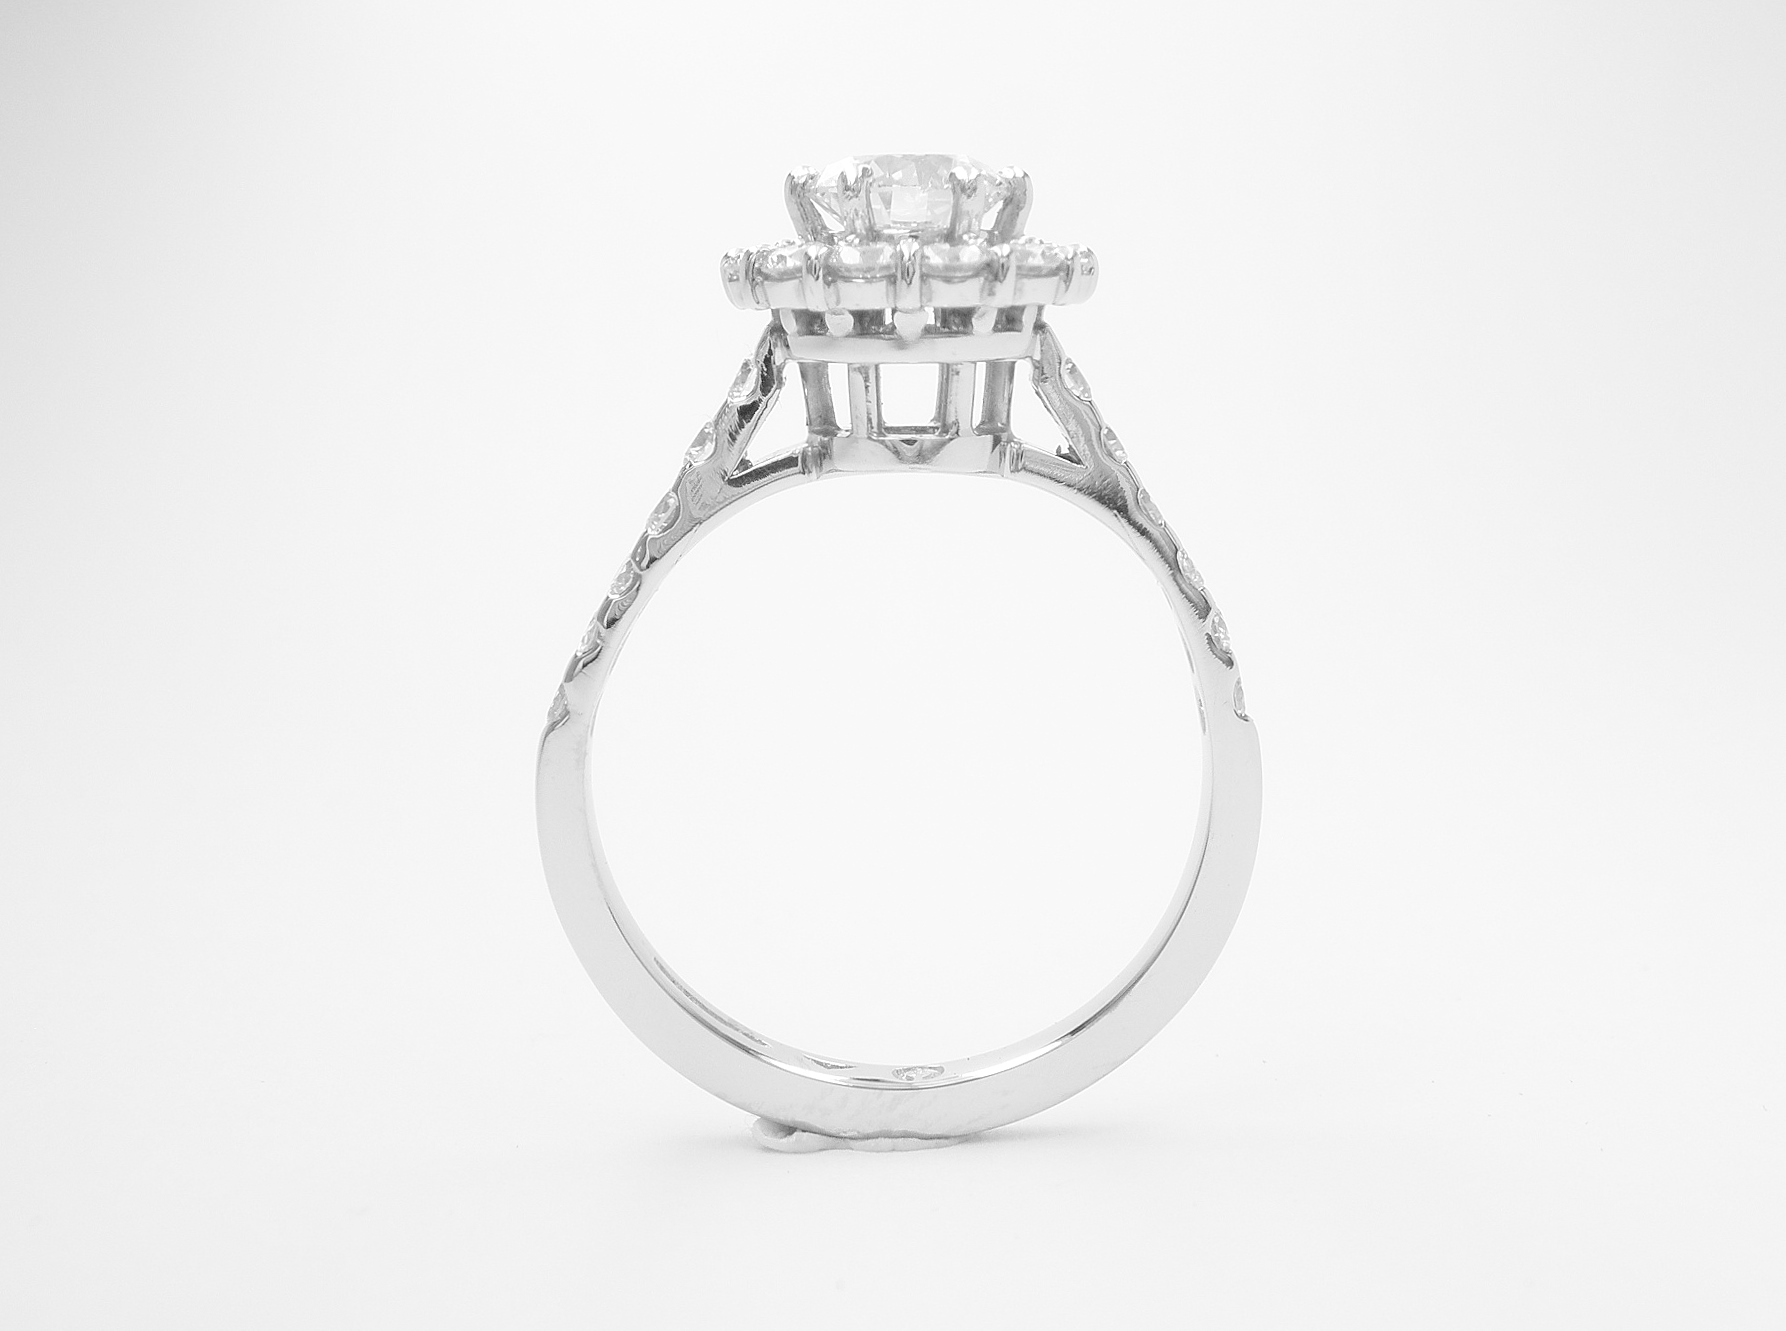 A halo cluster ring comprising of 13 round modern brilliant cut diamonds set in platinum with diamonds cut down set in the shoulders.